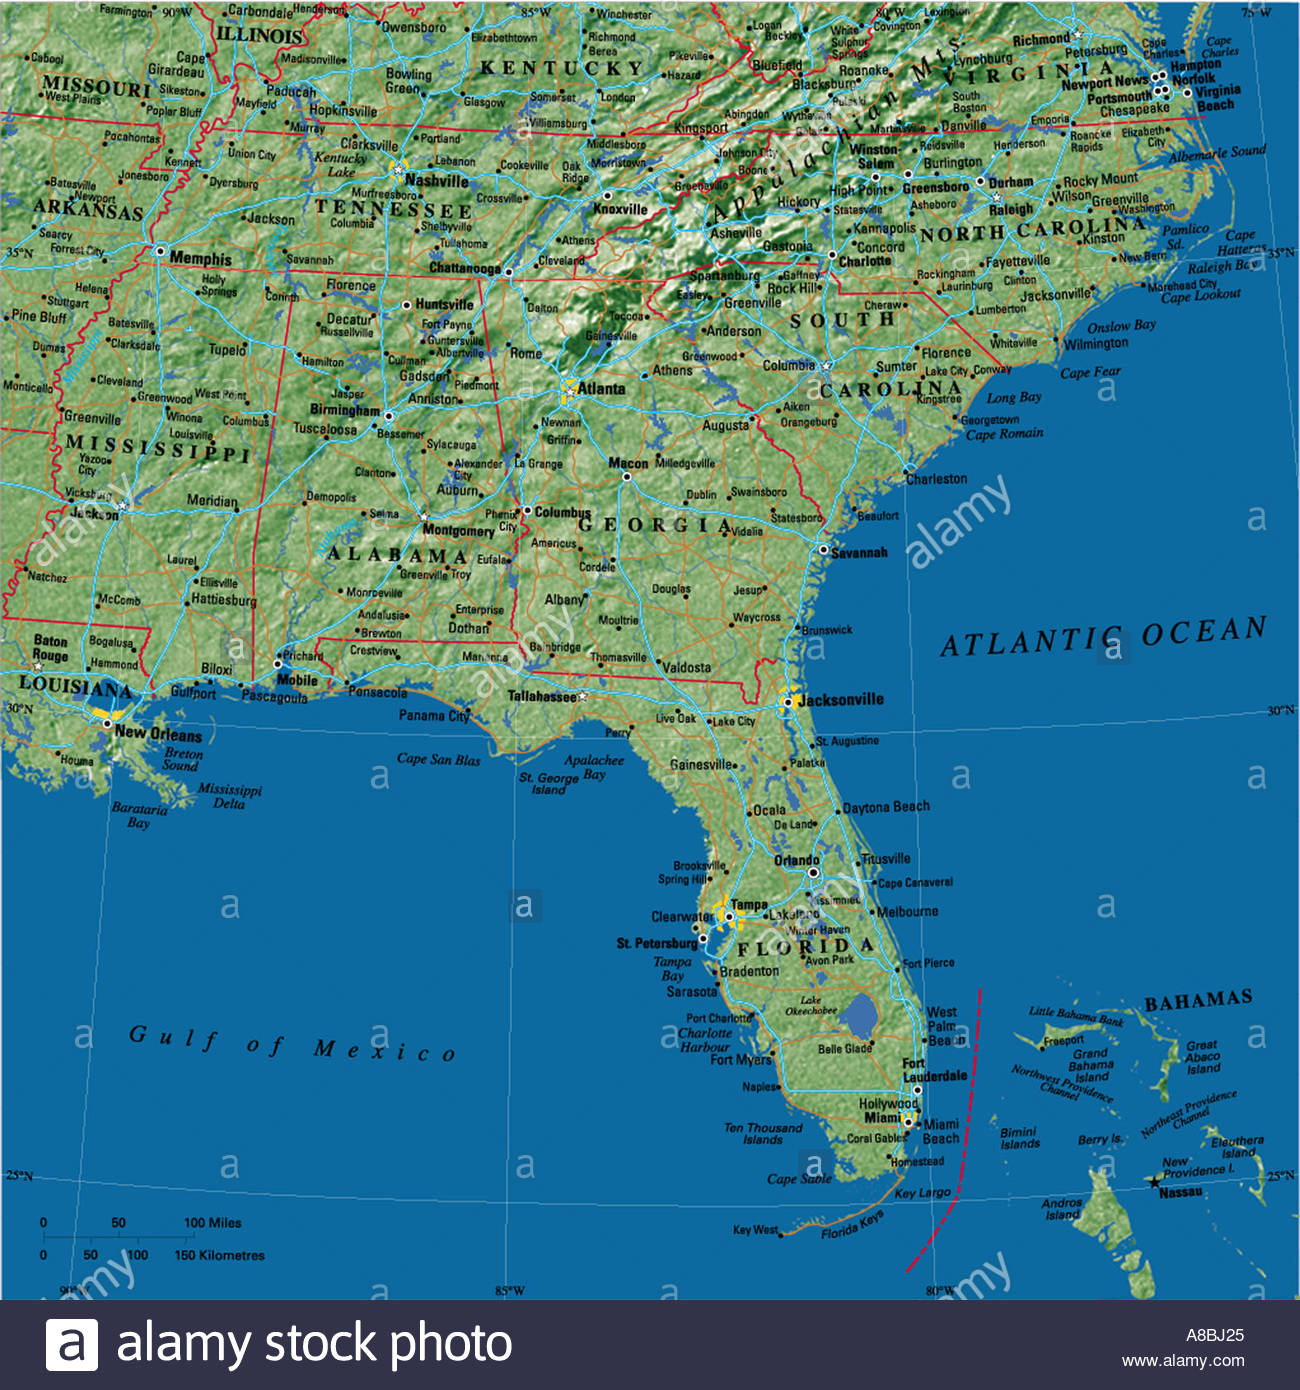 Map Maps USA Florida Caribbean Stock Photo Royalty Free Image - Map of usa and caribbean